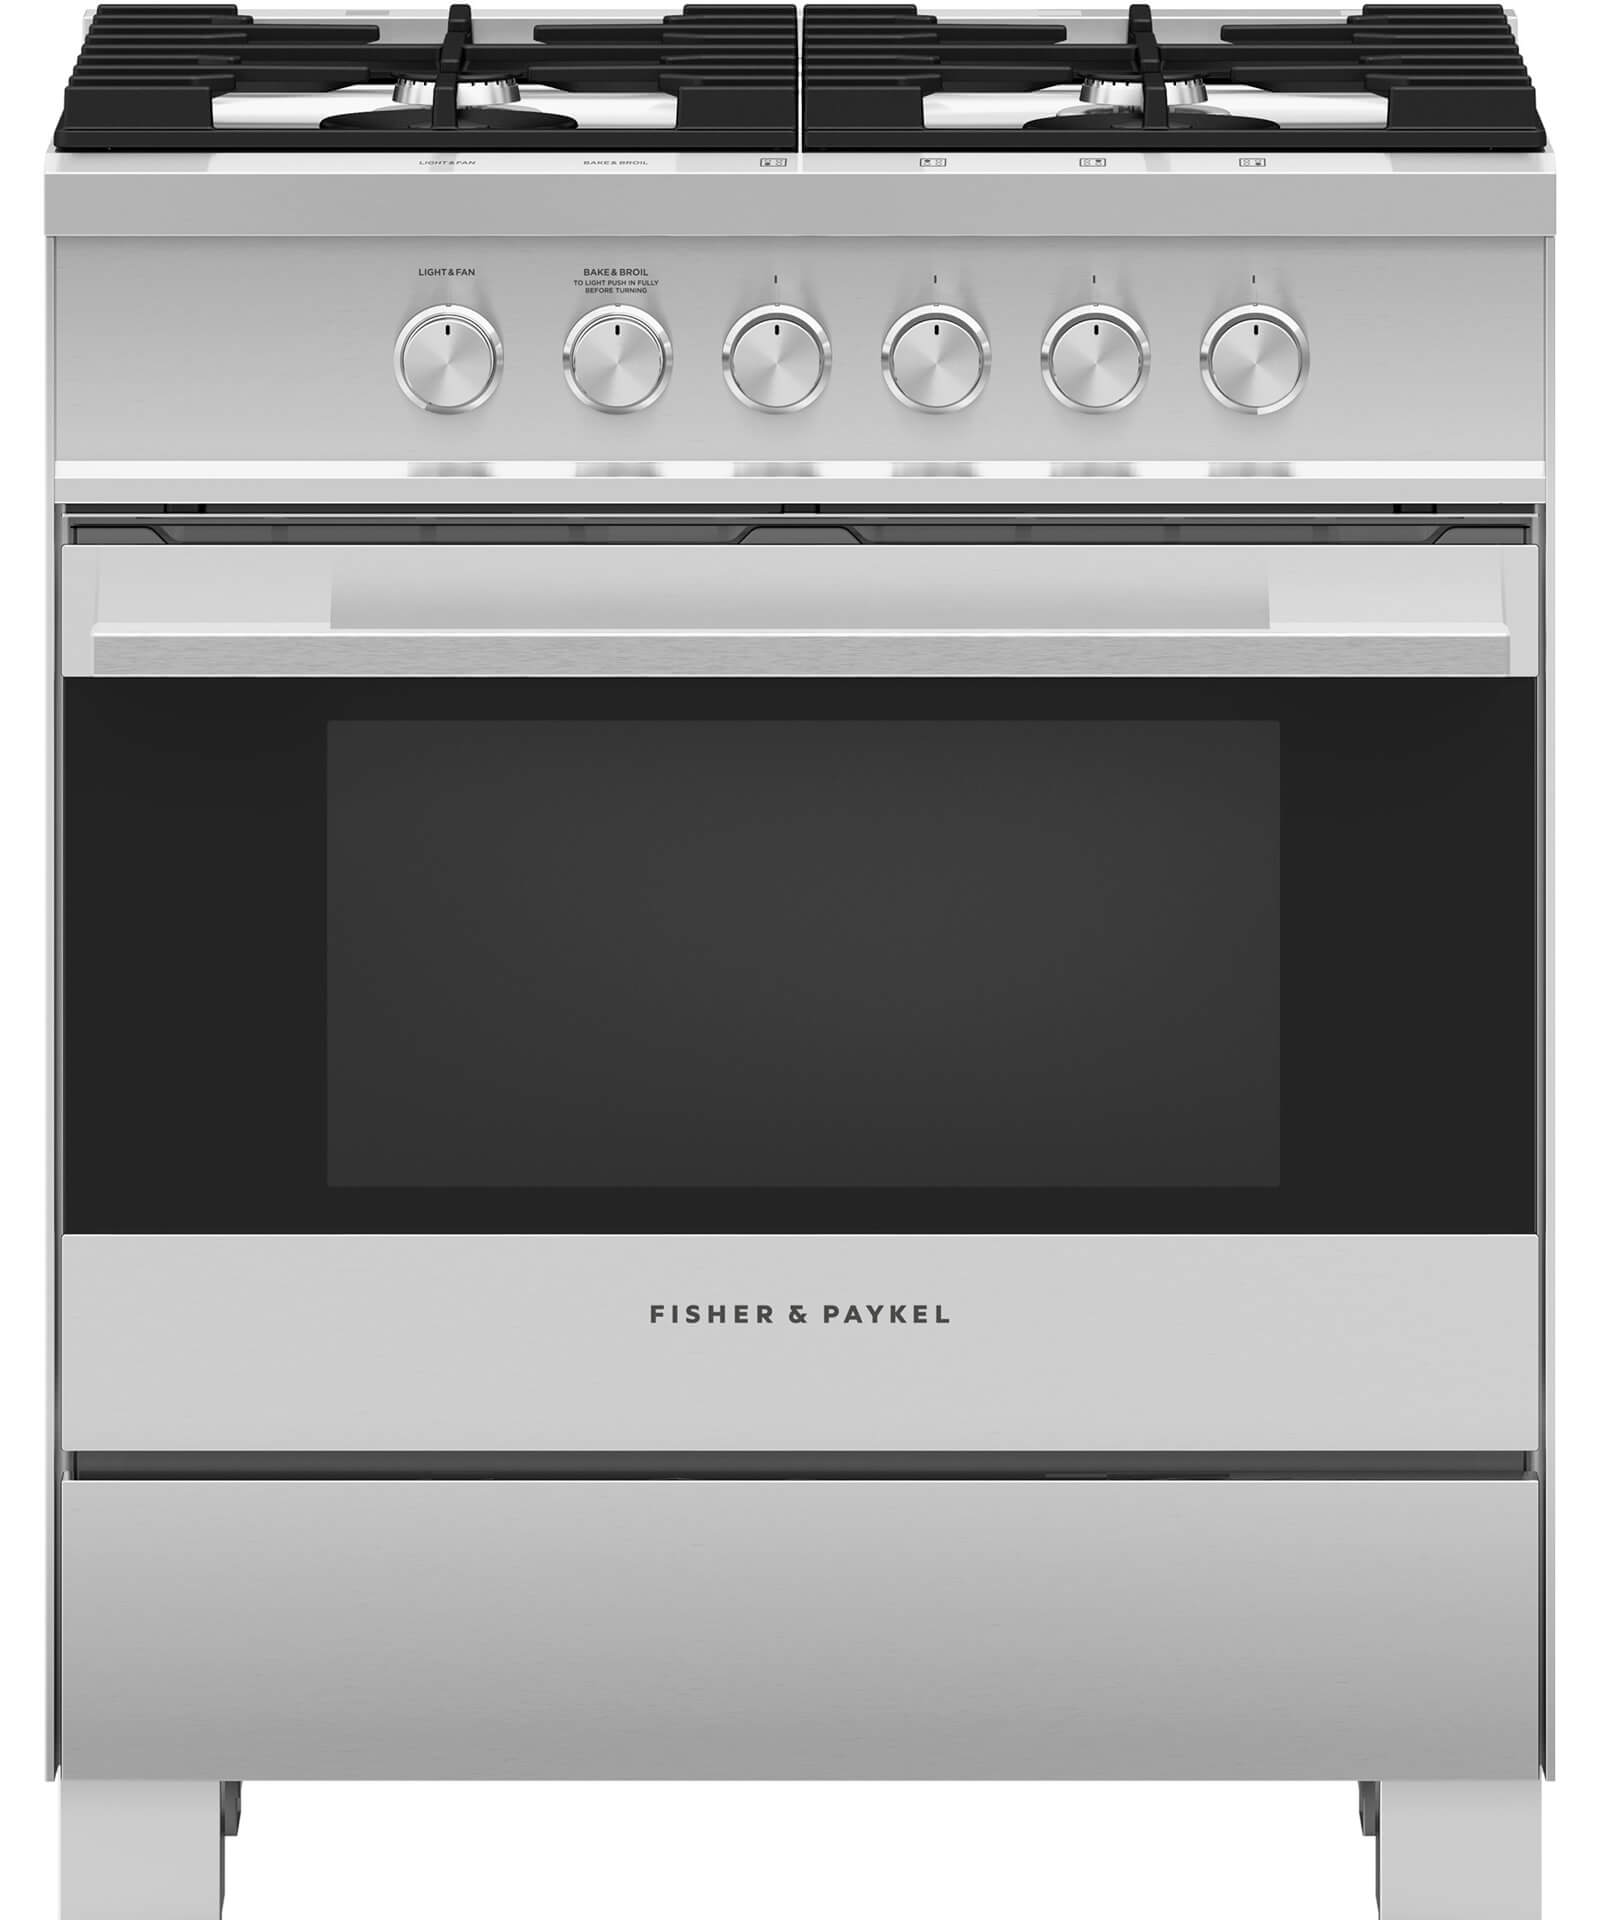 "OR30SDG4X1 - 30"" Gas Range - 81311"